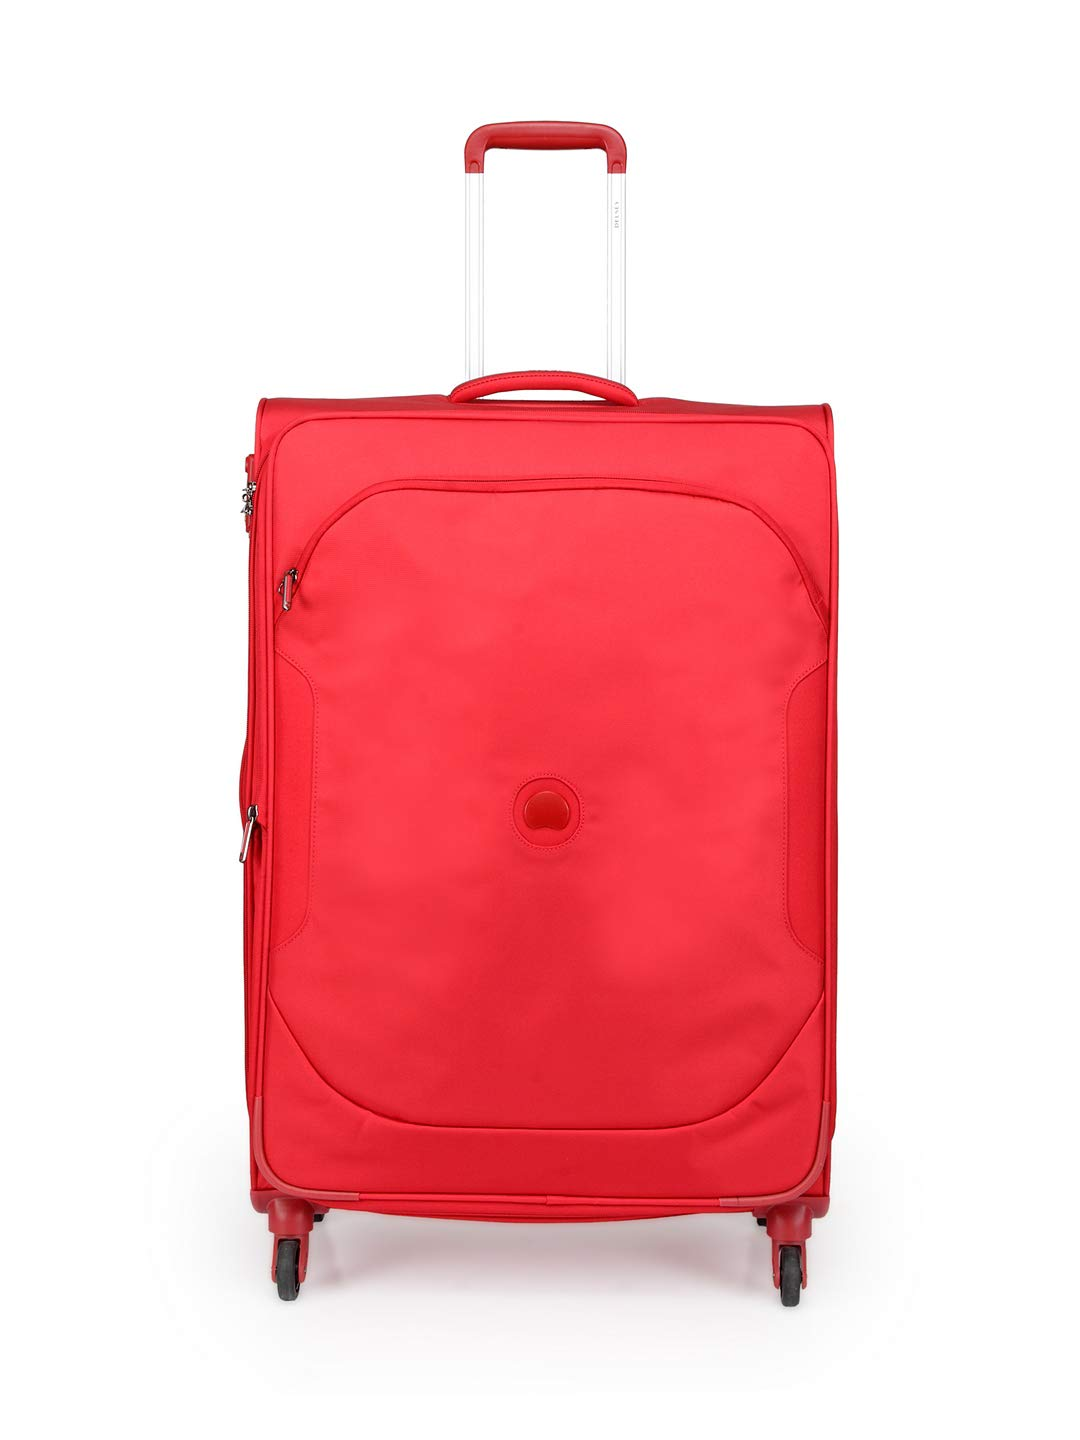 Delsey Polyester 79 Cms Red Softsided Check-In Luggage